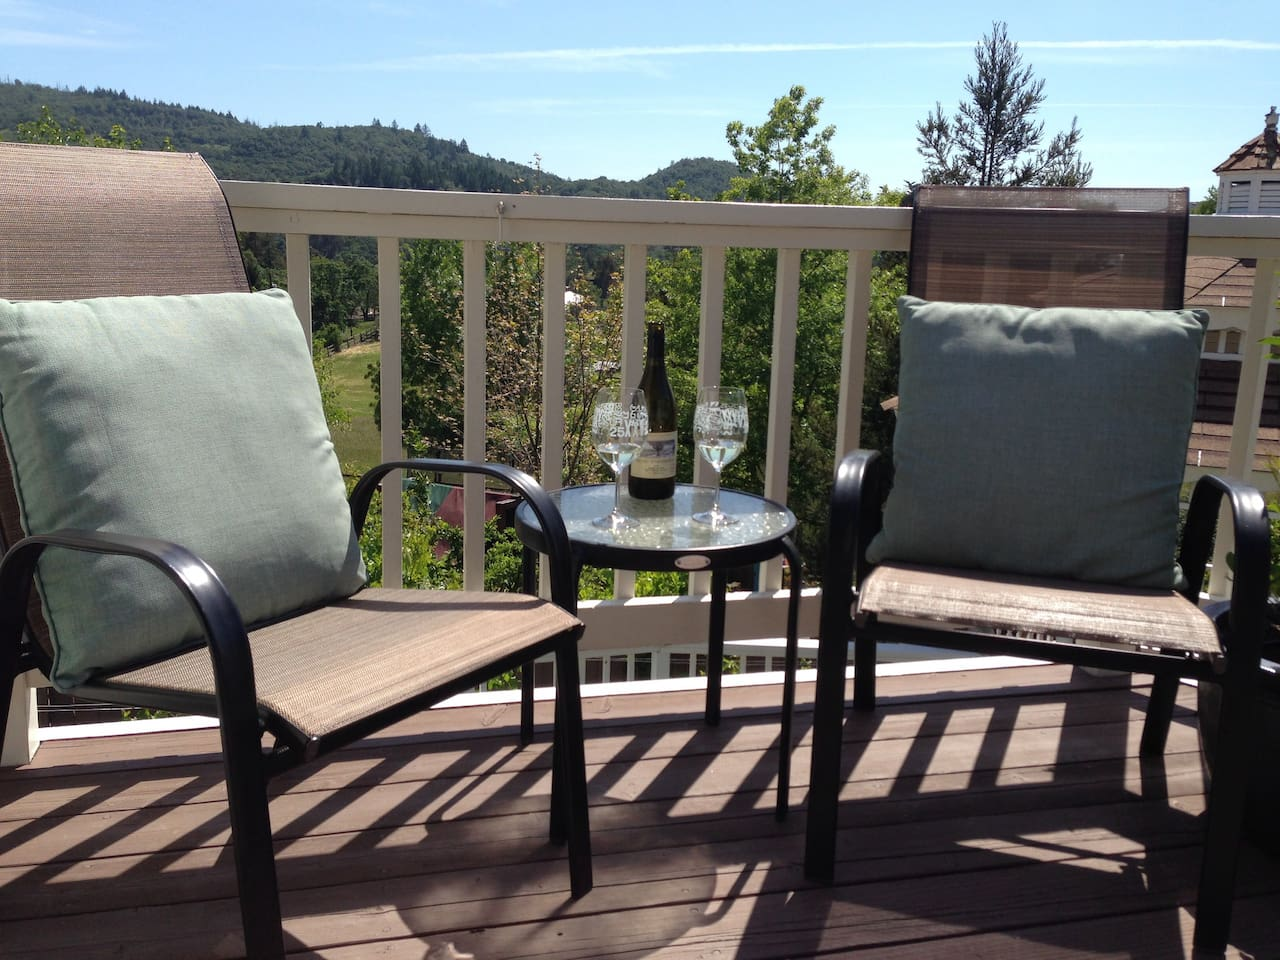 Enjoy a glass of wine on the sunny deck